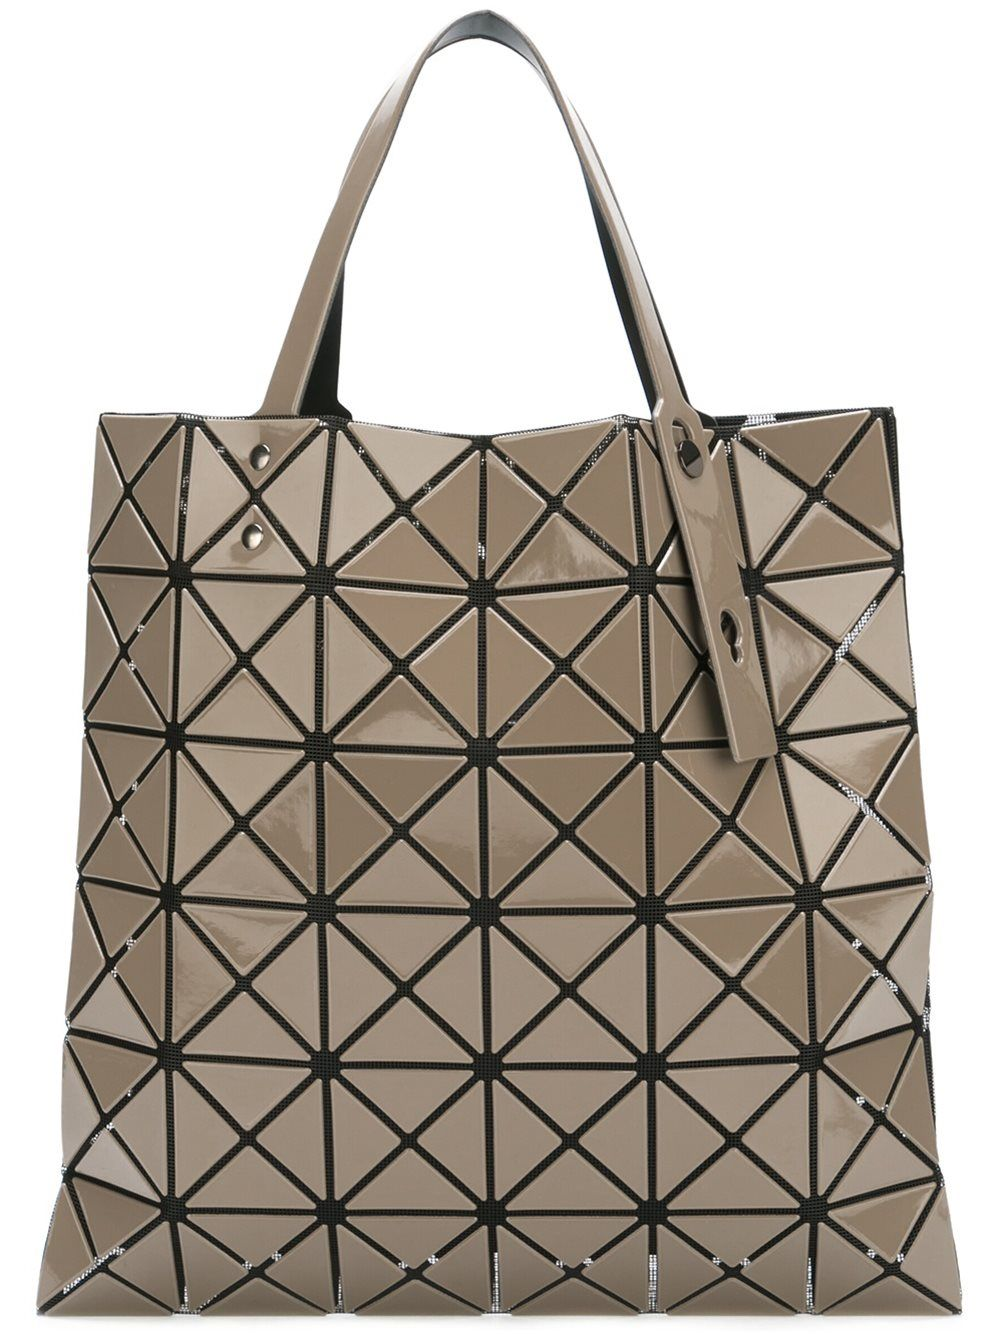 20409ce6a716 Bao bao issey miyake  prism  tote 42 women bags